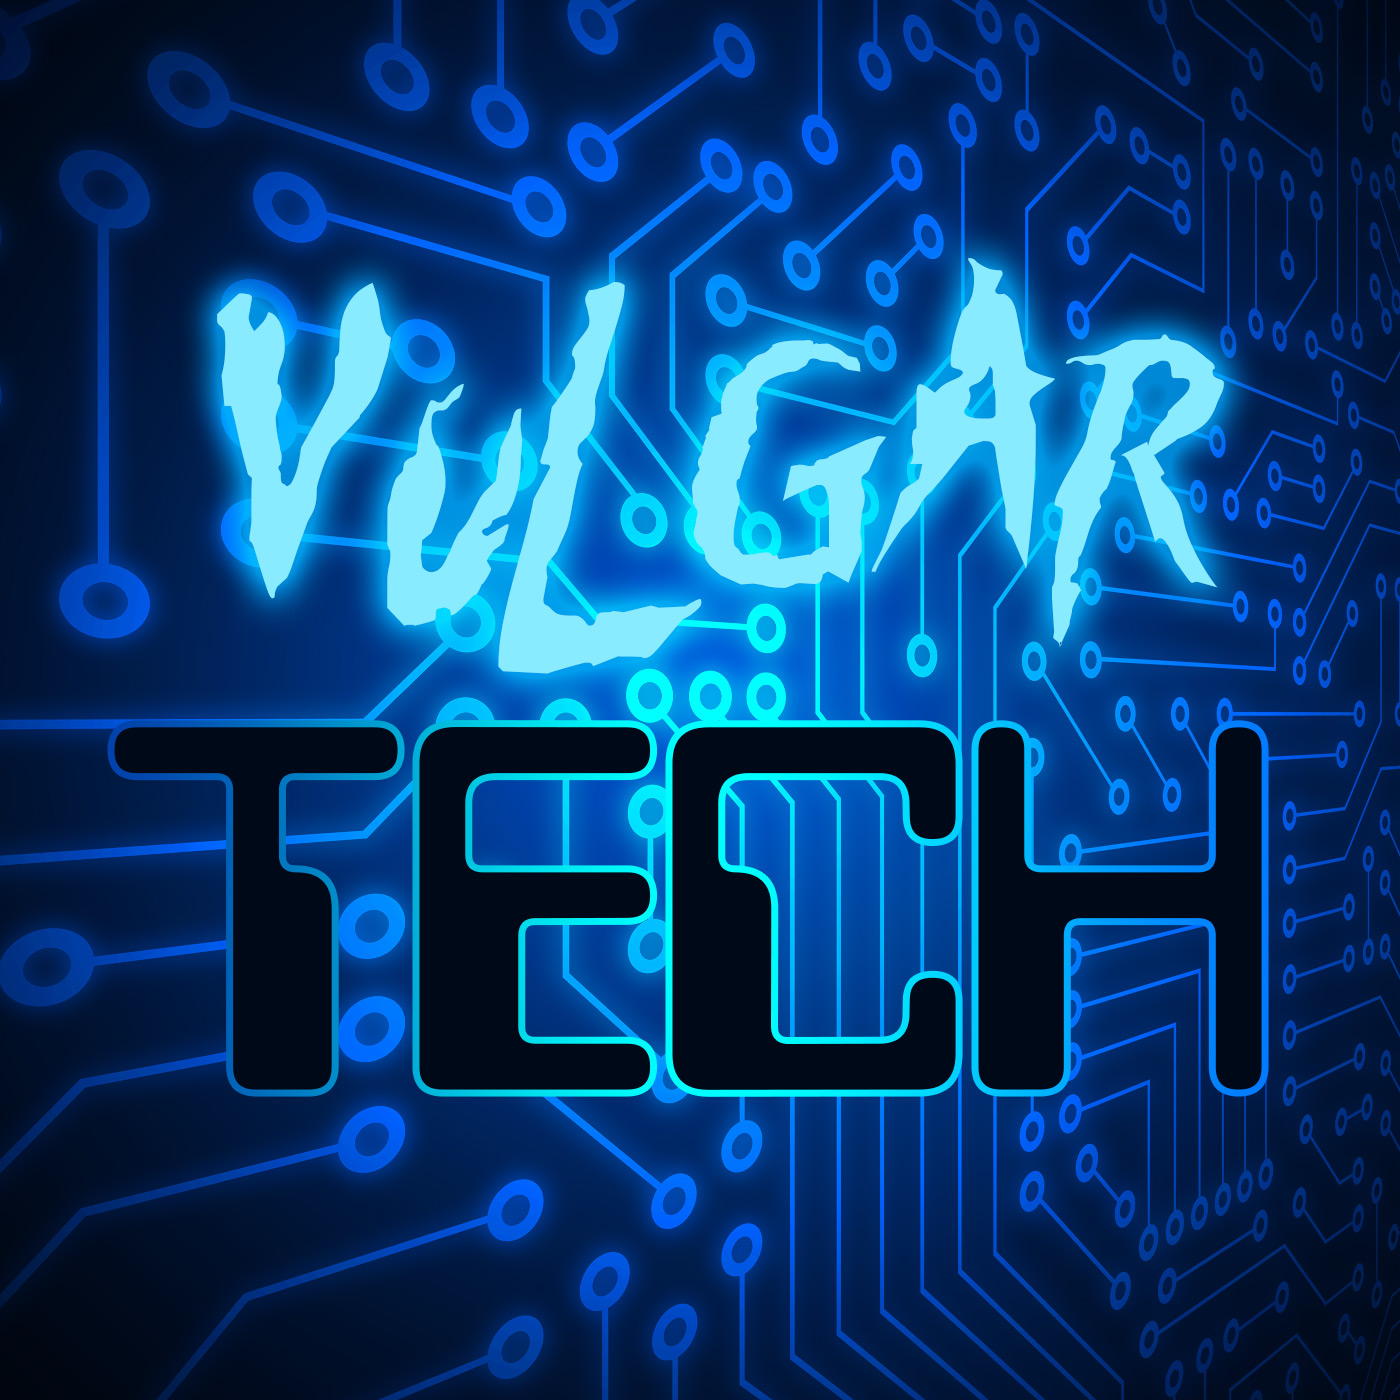 Vulgar Tech 014 : Hackers, Mandelberg's Law, Lyft & Uber Morality, Autopilot, and More!